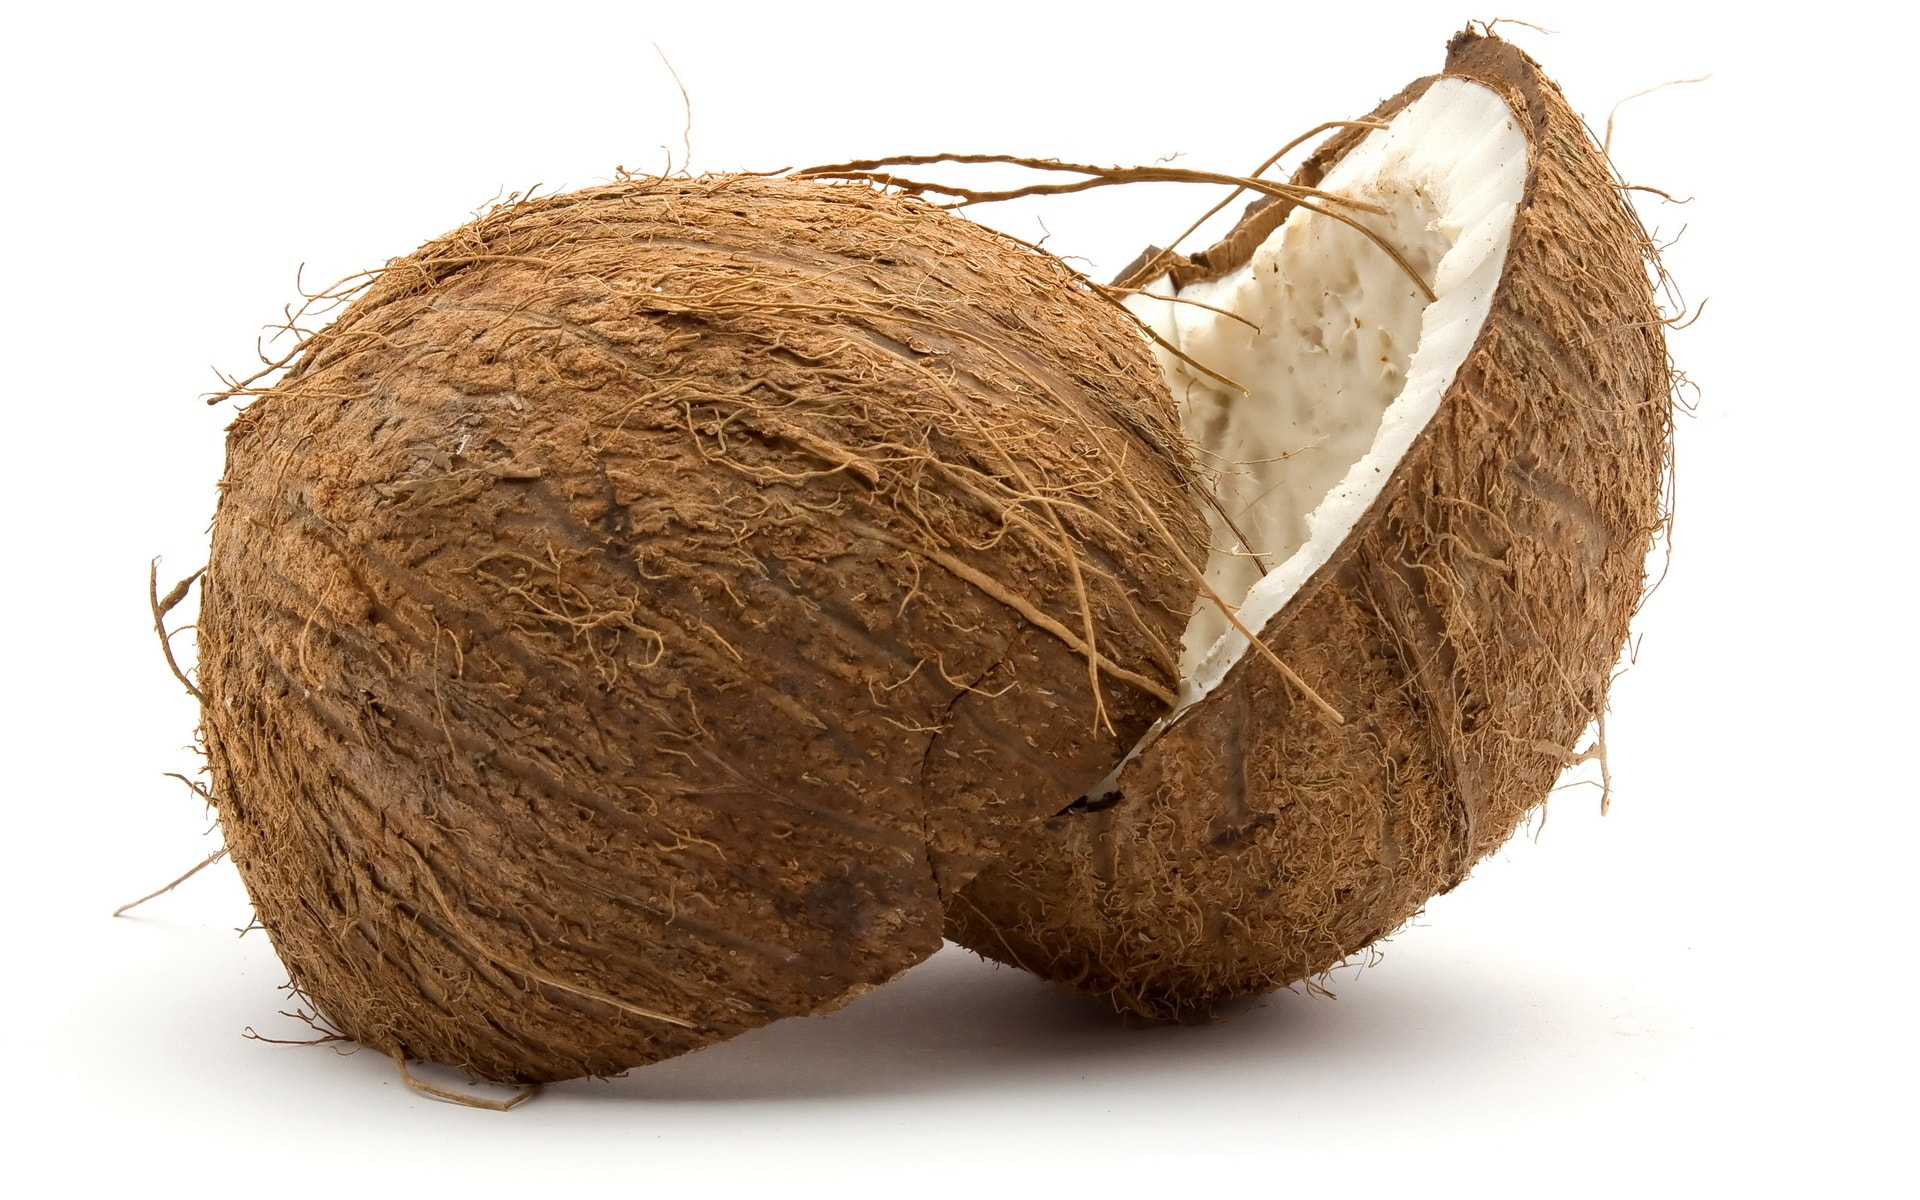 Coconut Wallpapers hd